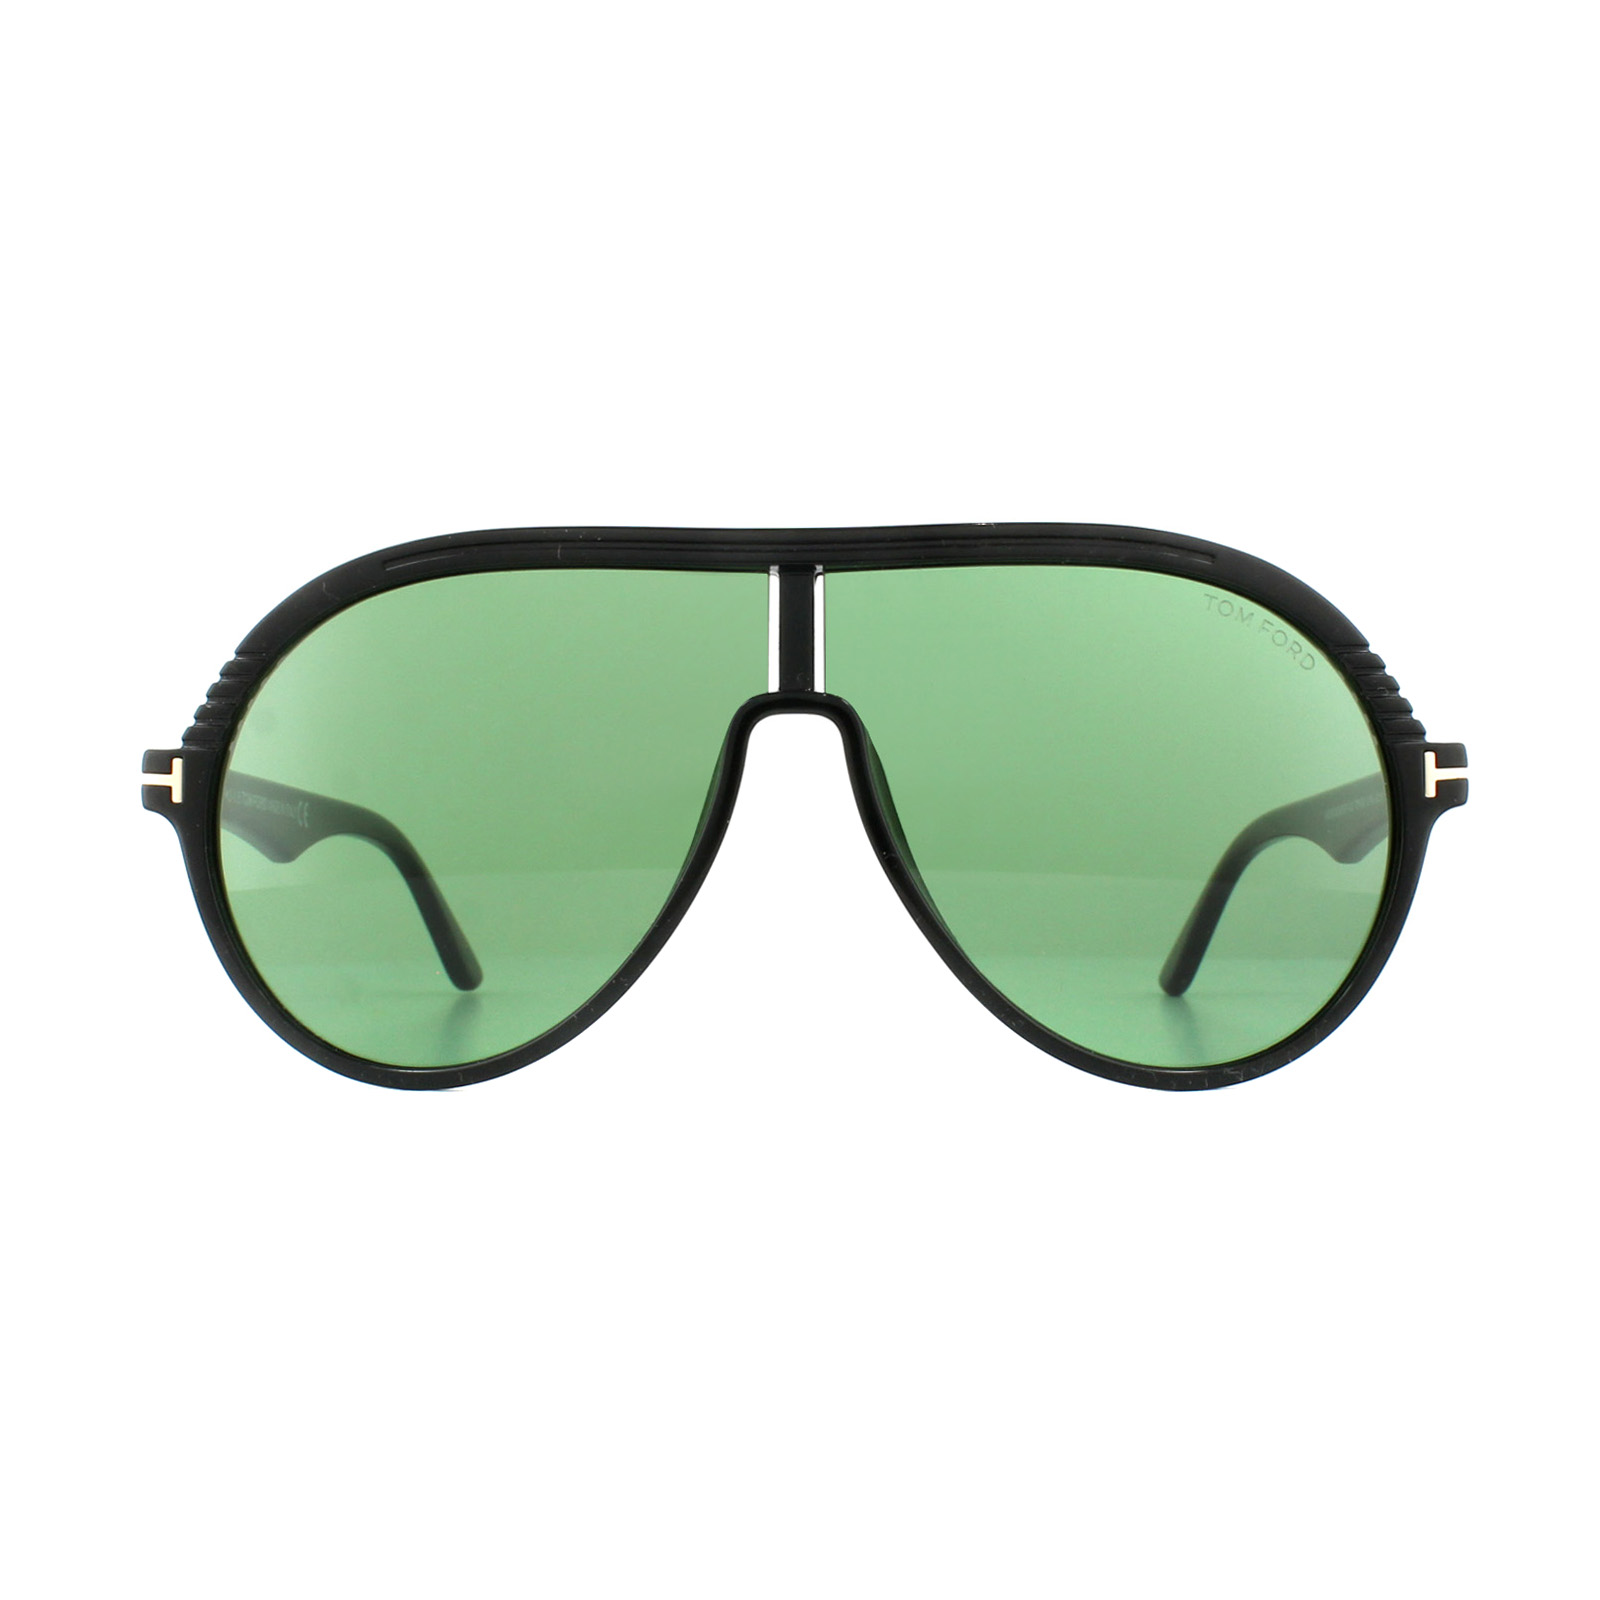 90acba6519c8 Sentinel Tom Ford Sunglasses 0647 Montgomery 01N Shiny Black Green